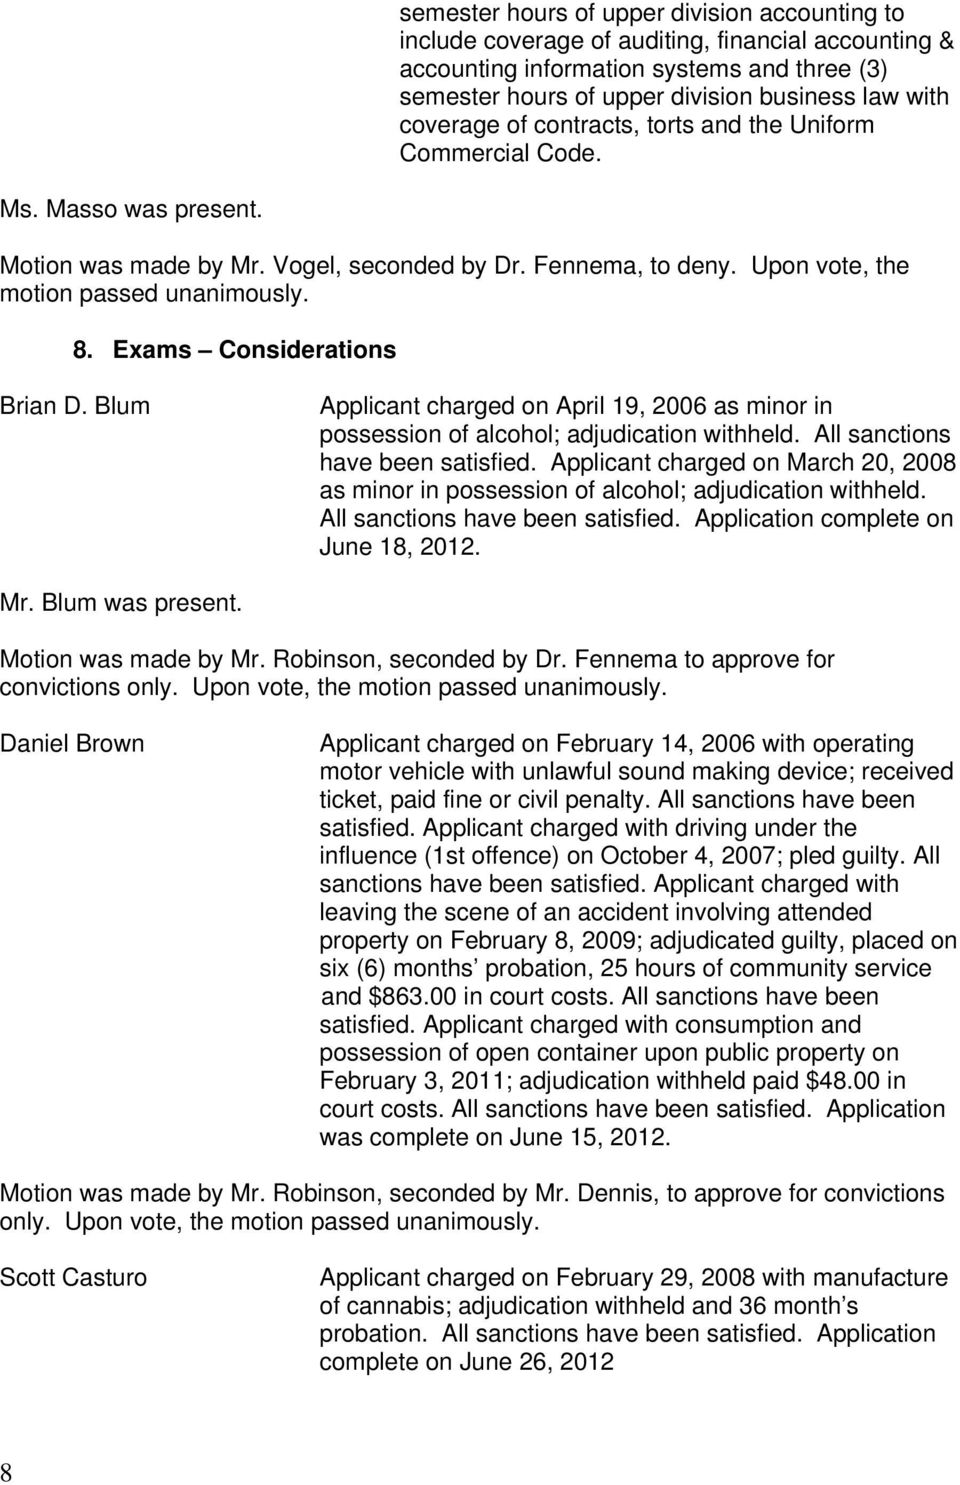 Exams Considerations Brian D. Blum Applicant charged on April 19, 2006 as minor in possession of alcohol; adjudication withheld. All sanctions have been satisfied.